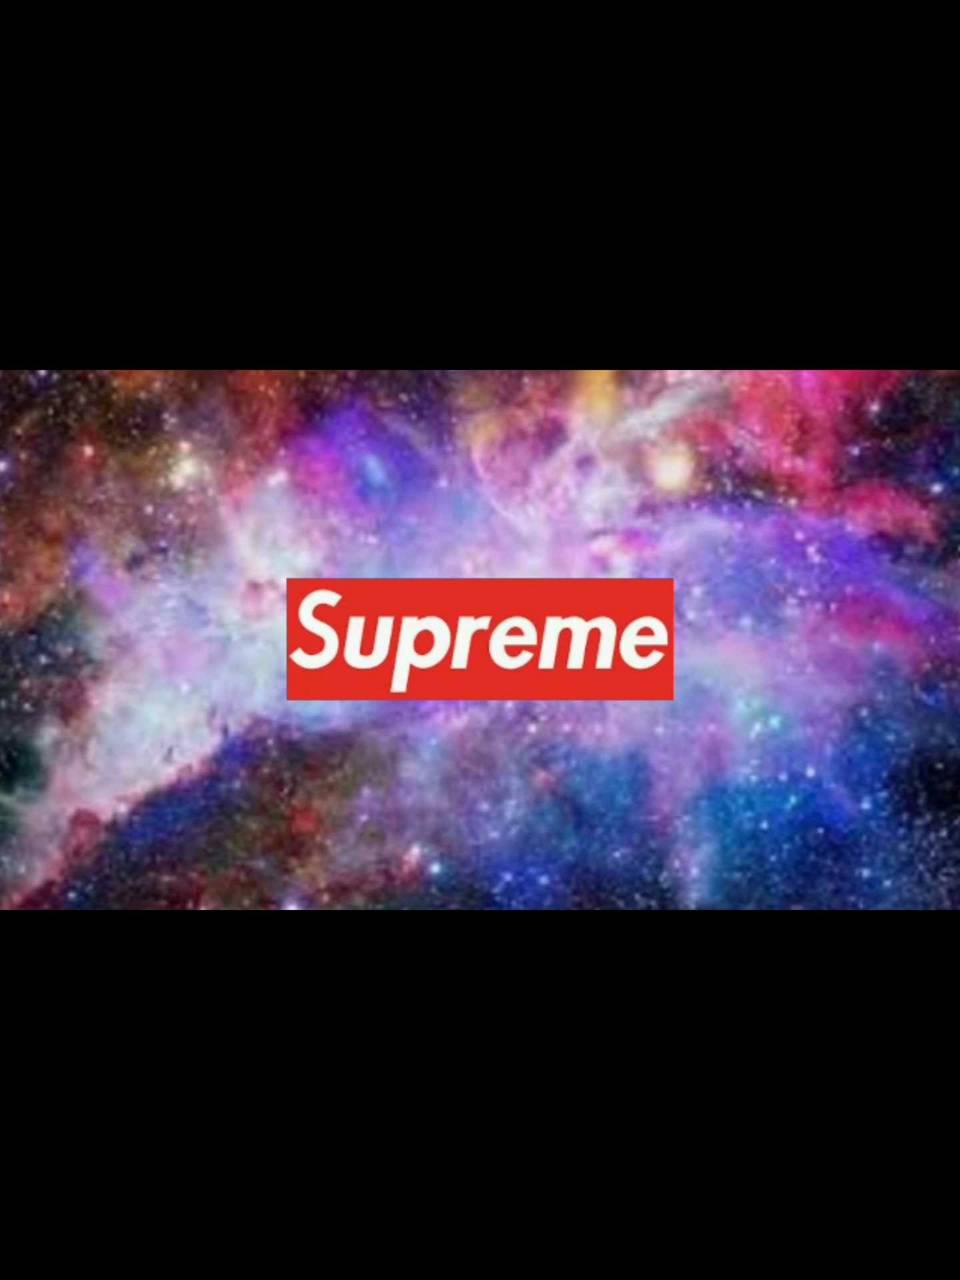 In to supreme verse